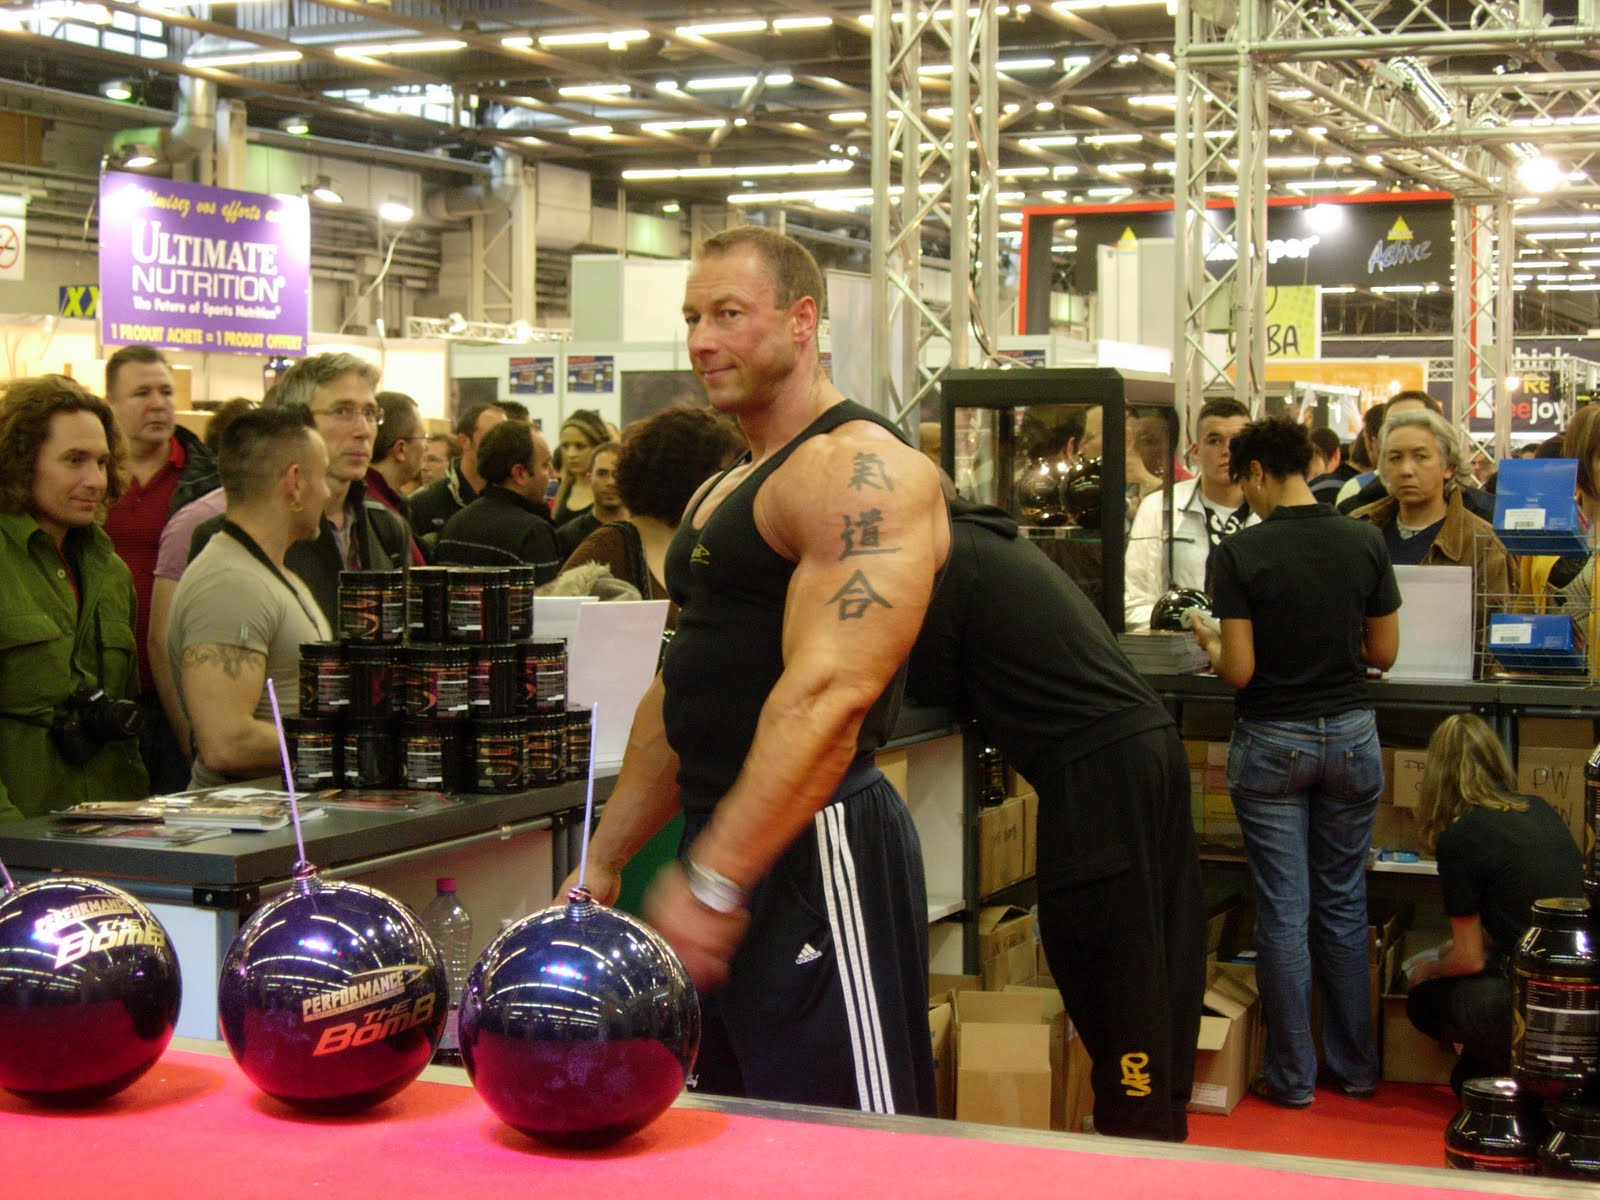 Gr gory capra visite au salon mondial du fitness paris for Salon du fitness palexpo